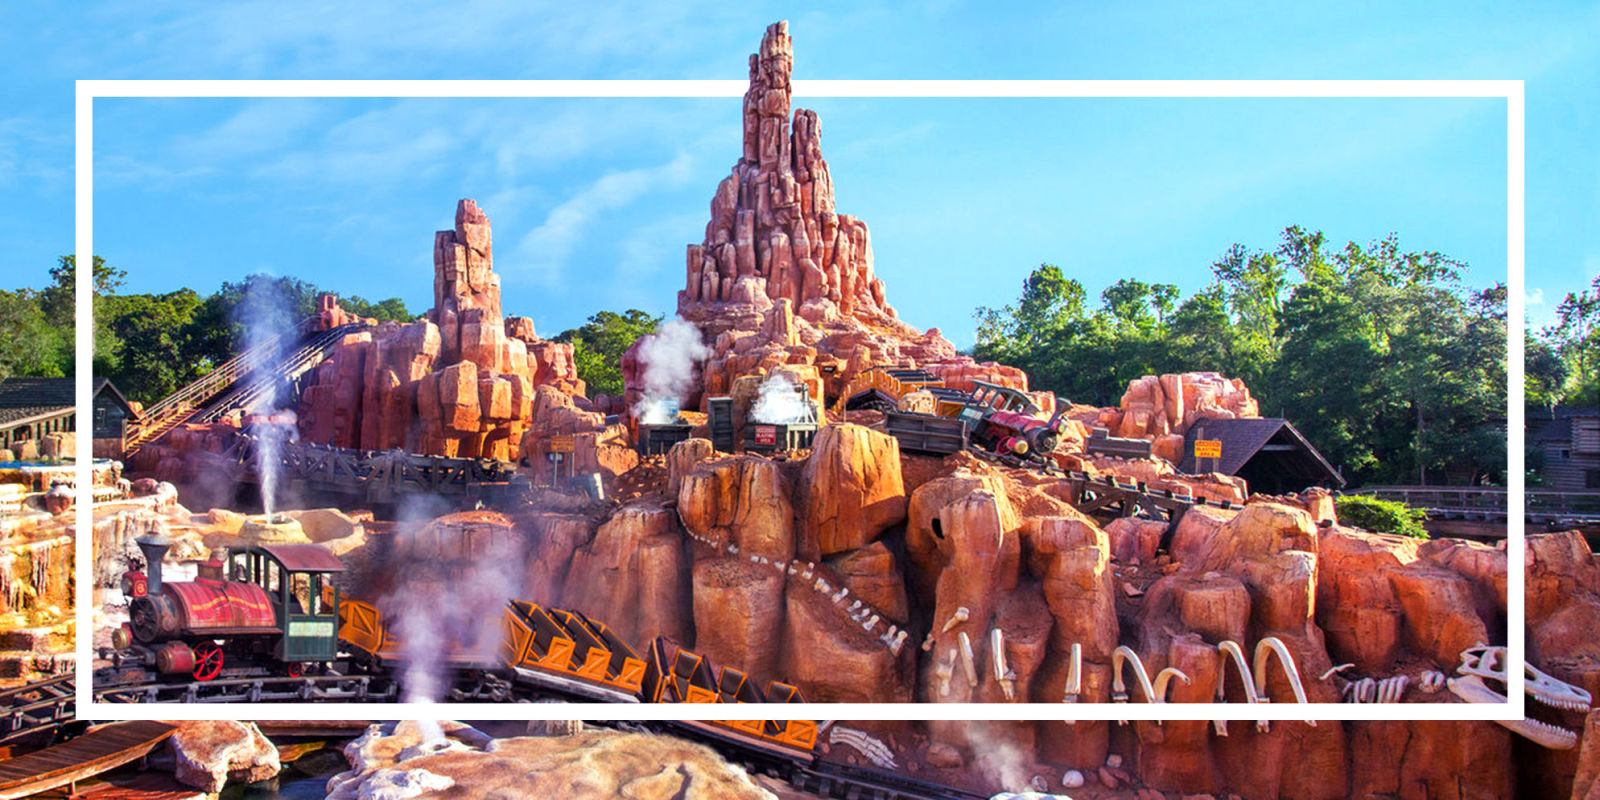 15 Best Rides At Disney World For 2018 A Ranking Of The